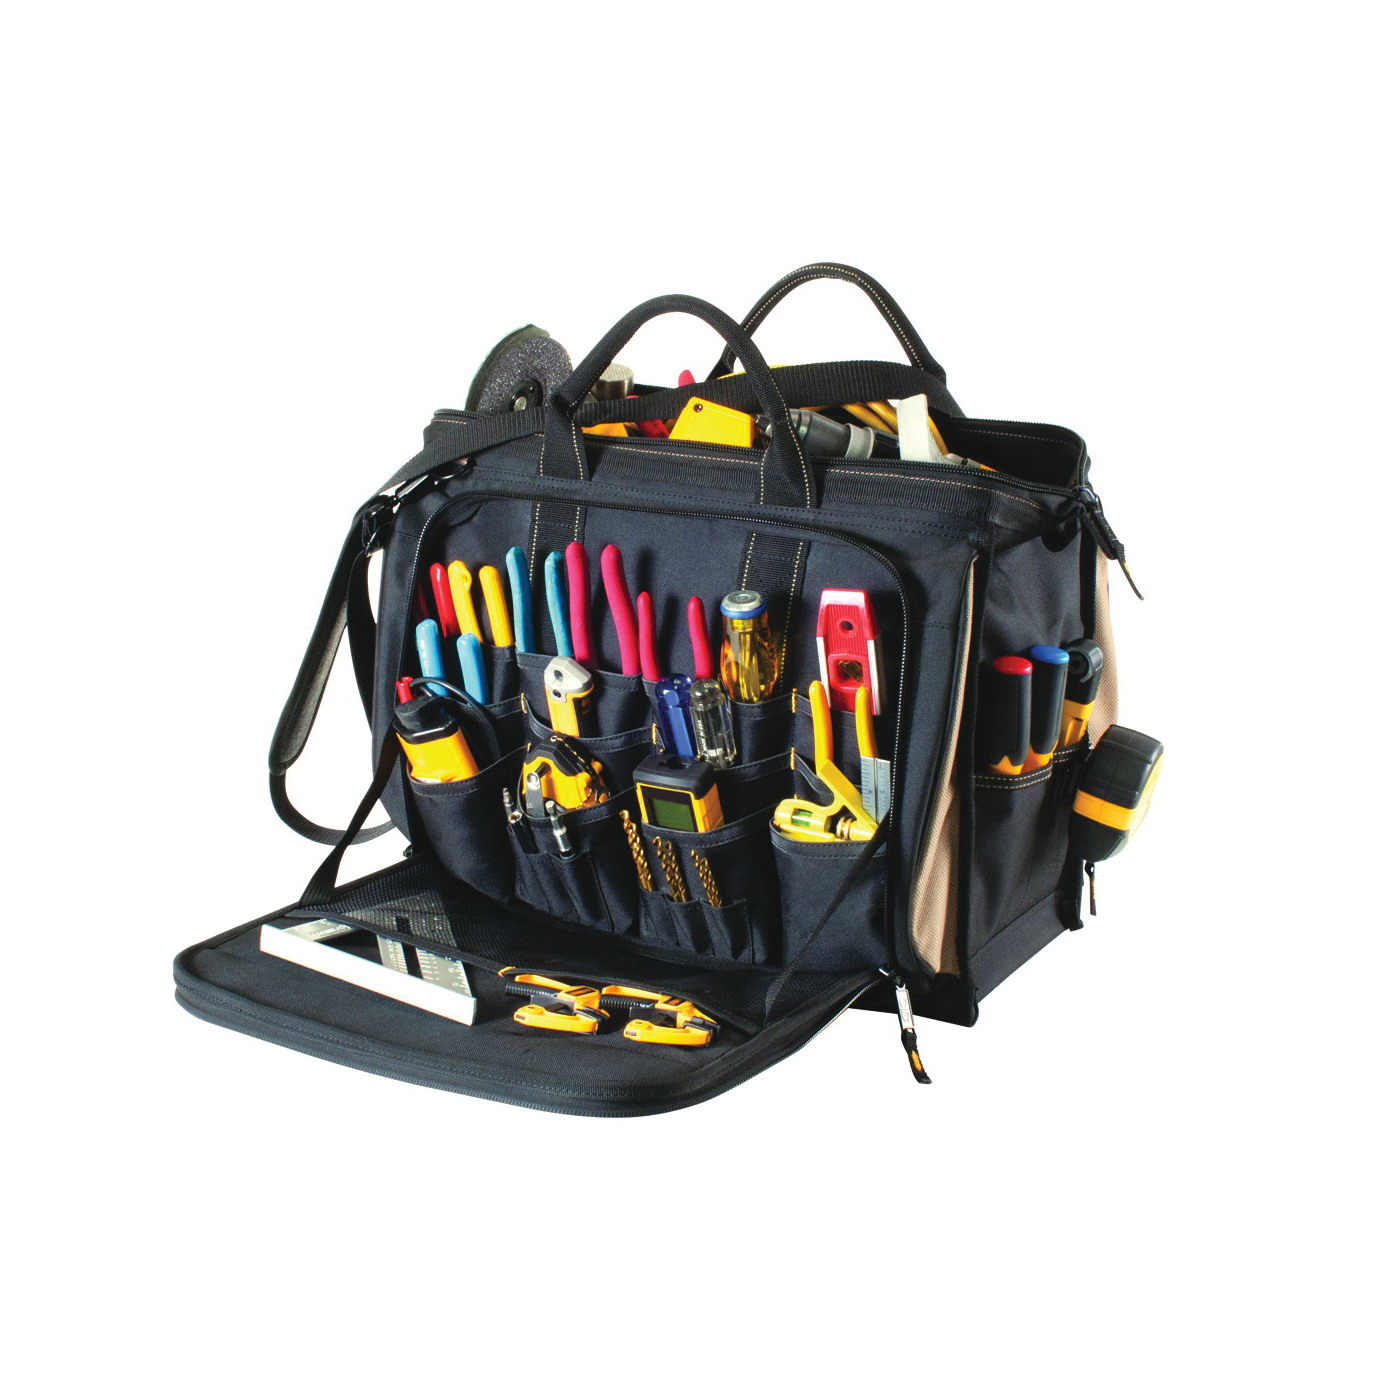 Picture of CLC Tool Works 1539 Multi-Compartment Tool Carrier, 7 in W, 14 in D, 18 in H, 58 -Pocket, Polyester, Black/Brown